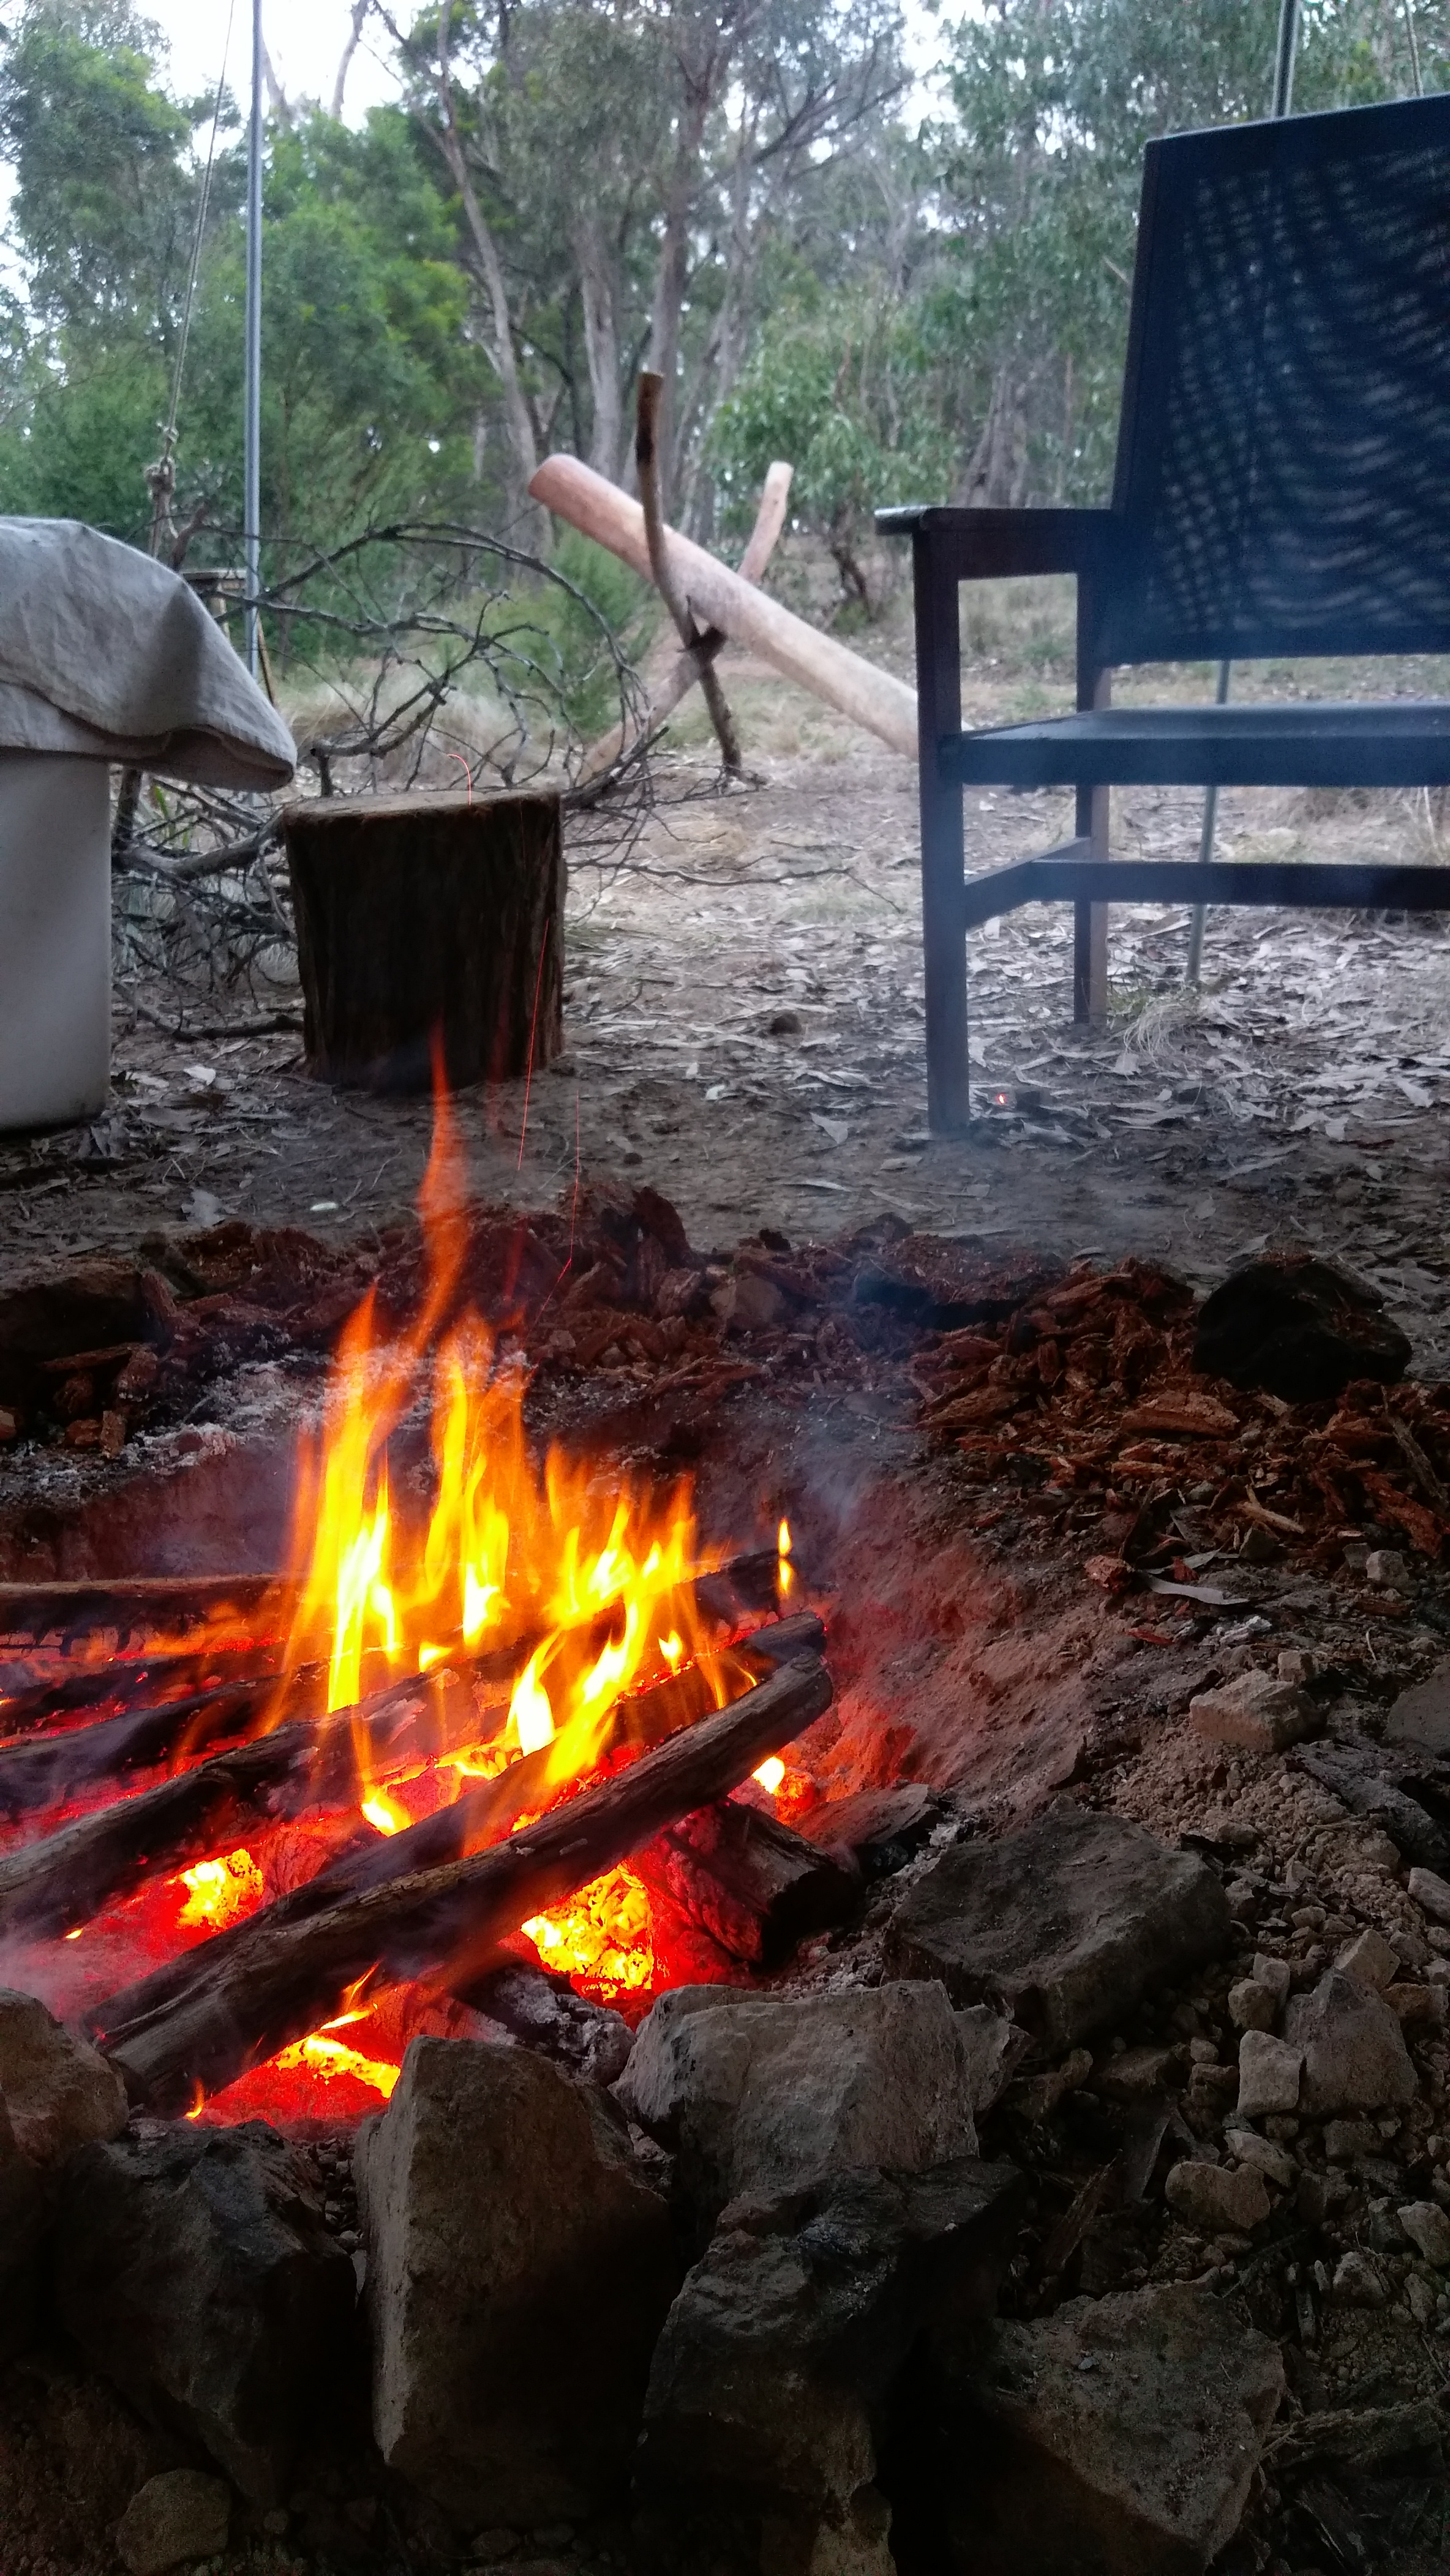 Pictured: At The Bush Tannery we use an open fire pit during safe times of the year to cook over the fire. This fire will need to burn down to hot coals before cooking on.